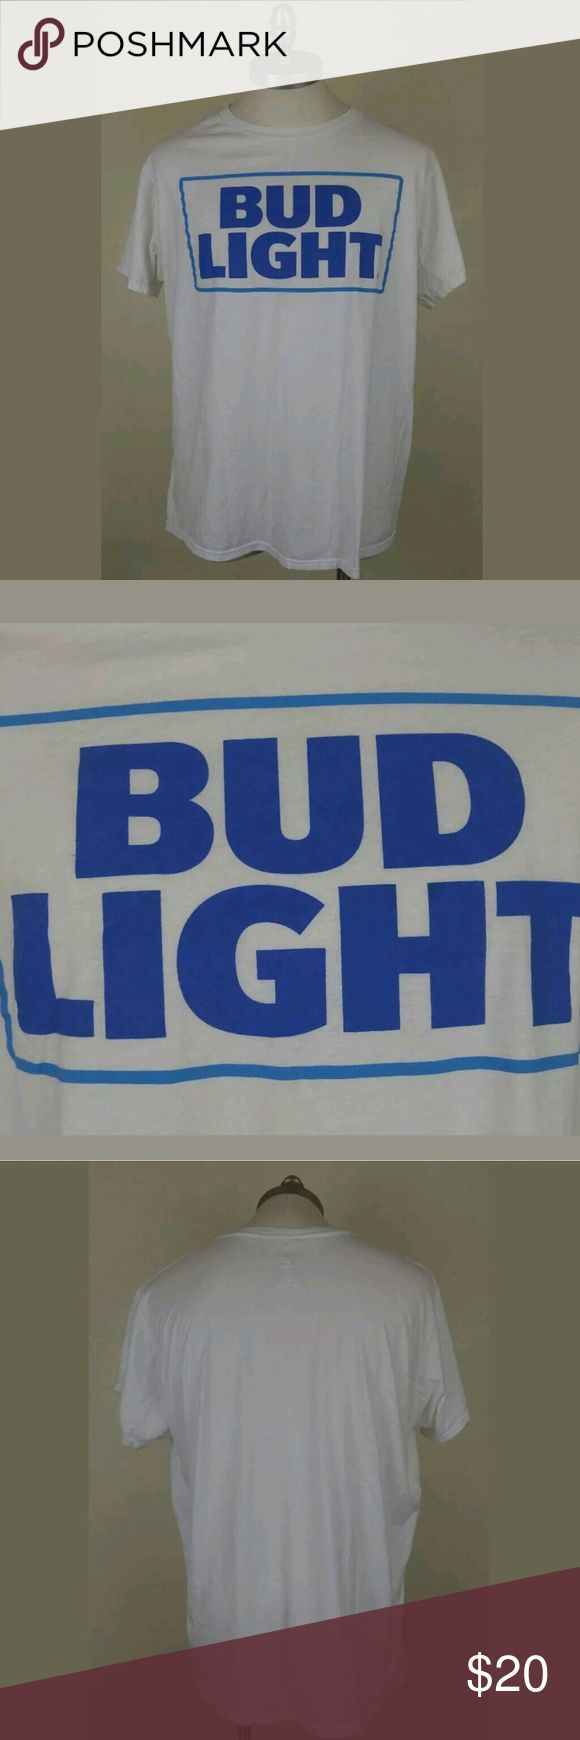 """Bud Light Beer Mens Wht Graphic Crewneck Shirt XL Bud Light Beer Blue White Mens Crewneck White Short Sleeve Graphic T Shirt XL. T Shirt is pre owned. No rips or stains. Item comes from smoke free home.? Underarm to underarm: 24"""" (on flat surface)? Lenght of shirt: 29"""" Hanes Shirts Tees - Short Sleeve"""